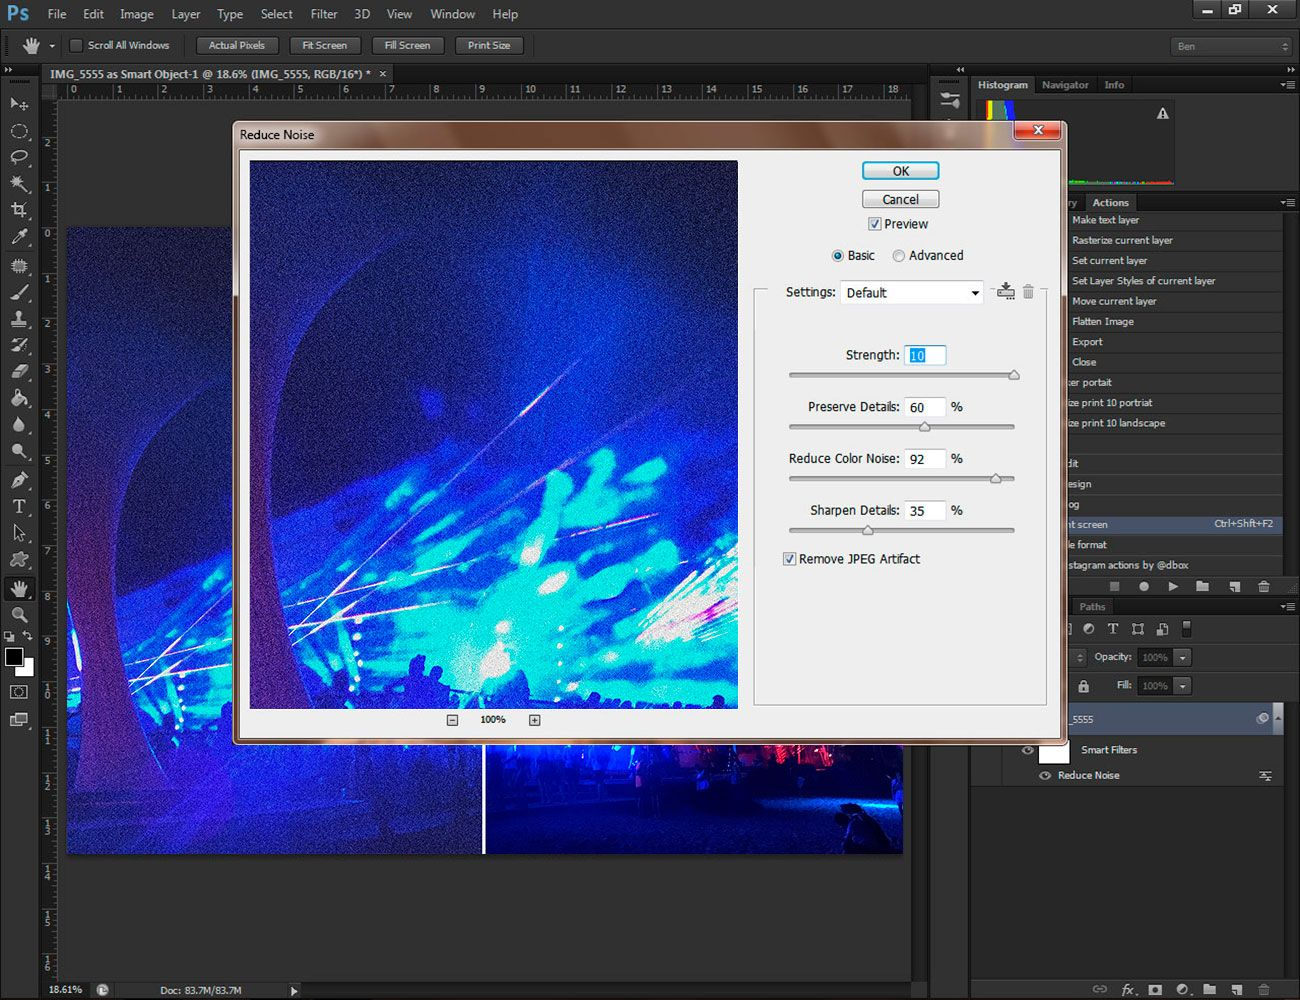 Get rid of noise in adobe photoshop.